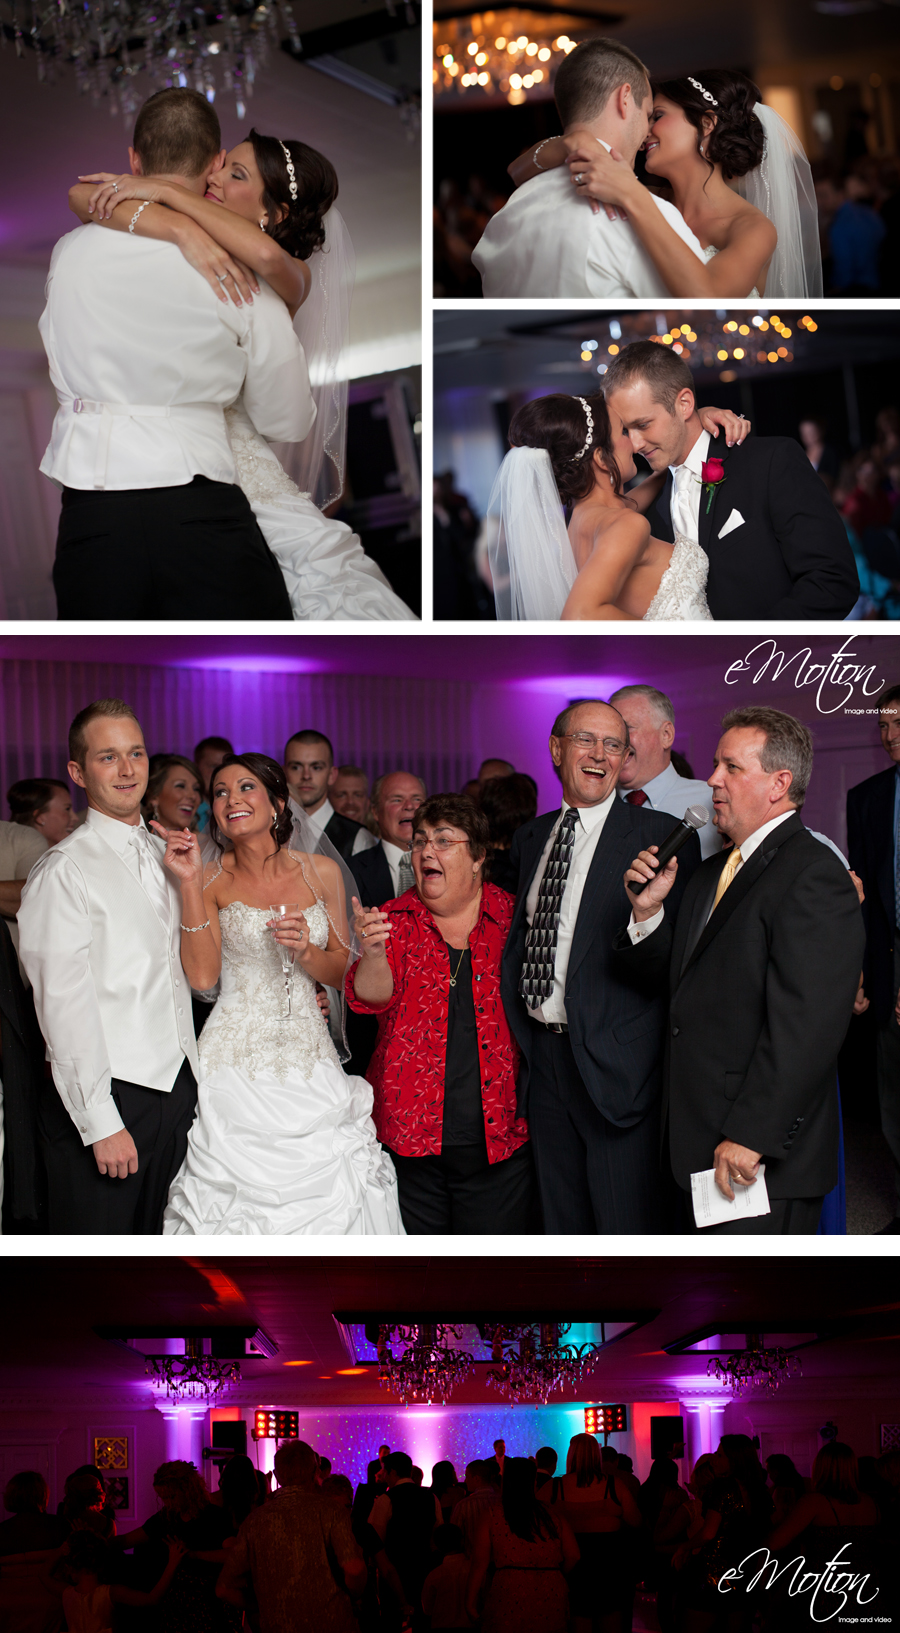 Kenny Sauter with  Masters of Music  turned the reception into a huge dance party that everyone enjoyed.  Kenny has some of the best decor lighting in the industry.  Every time I work with Kenny at a wedding I know it is sure to be an awesome reception.